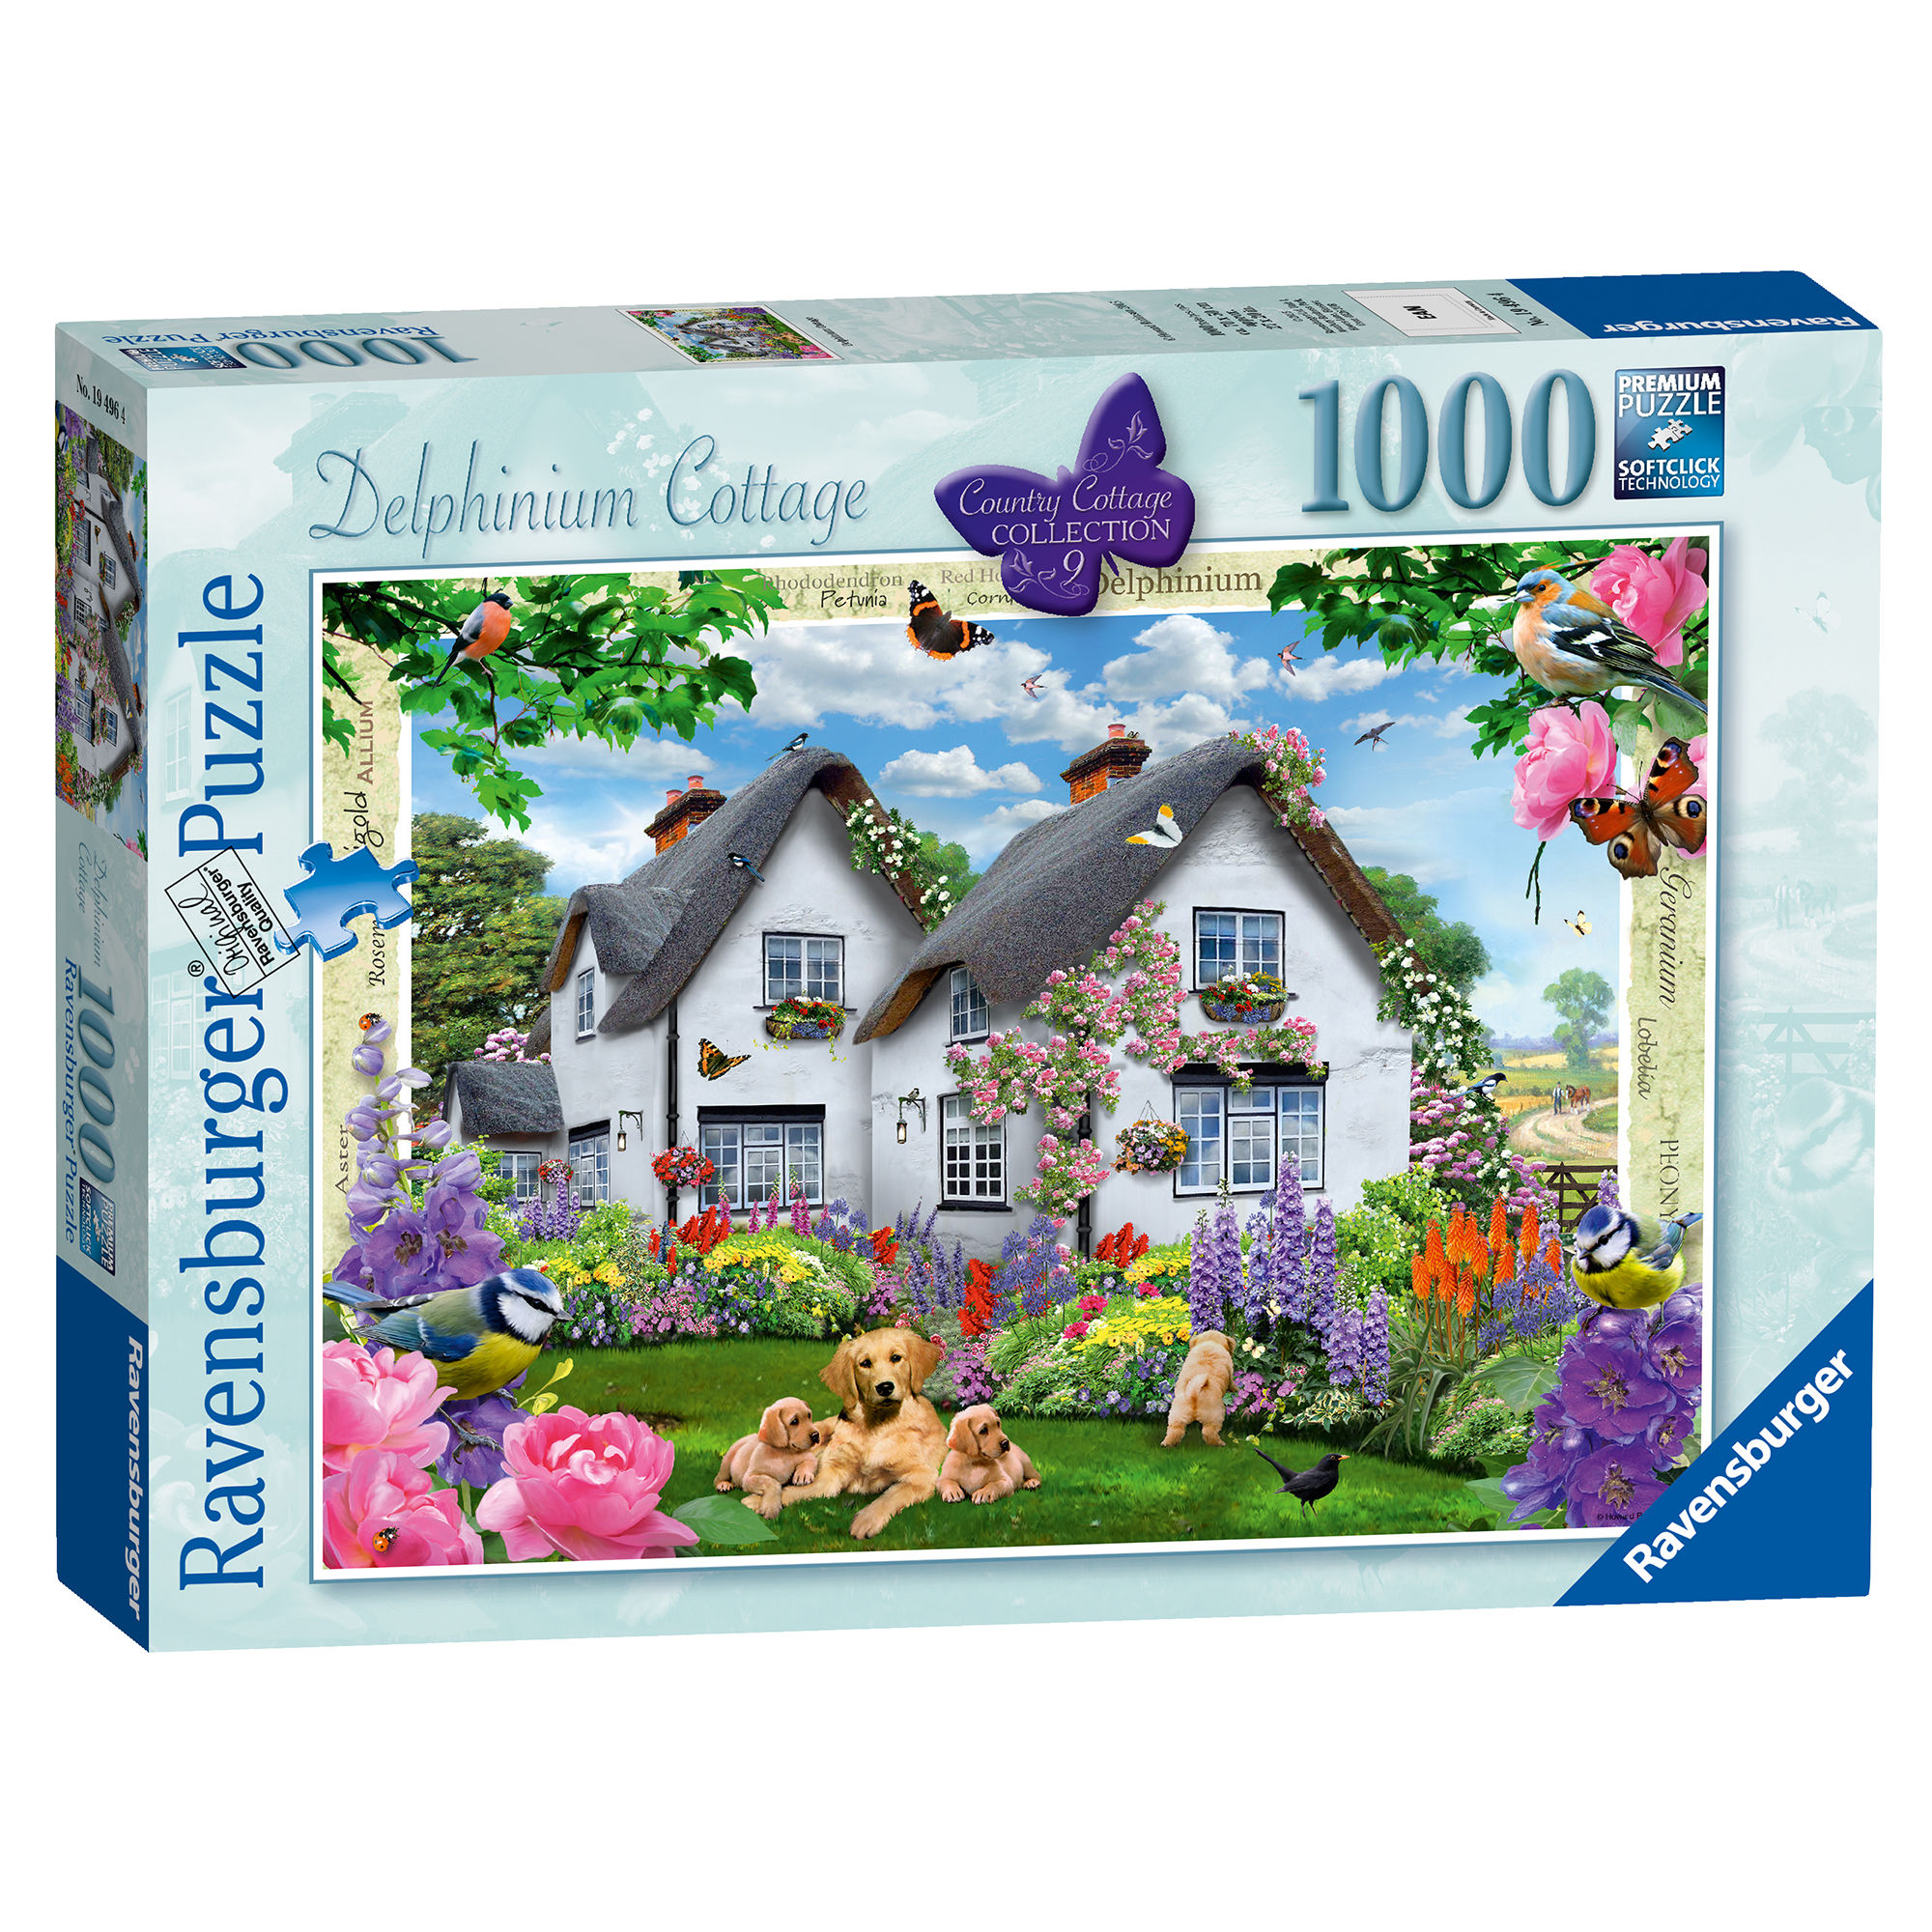 Ravensburger Country Cottage Delphinium Cottage 1000 Piece Puzzle